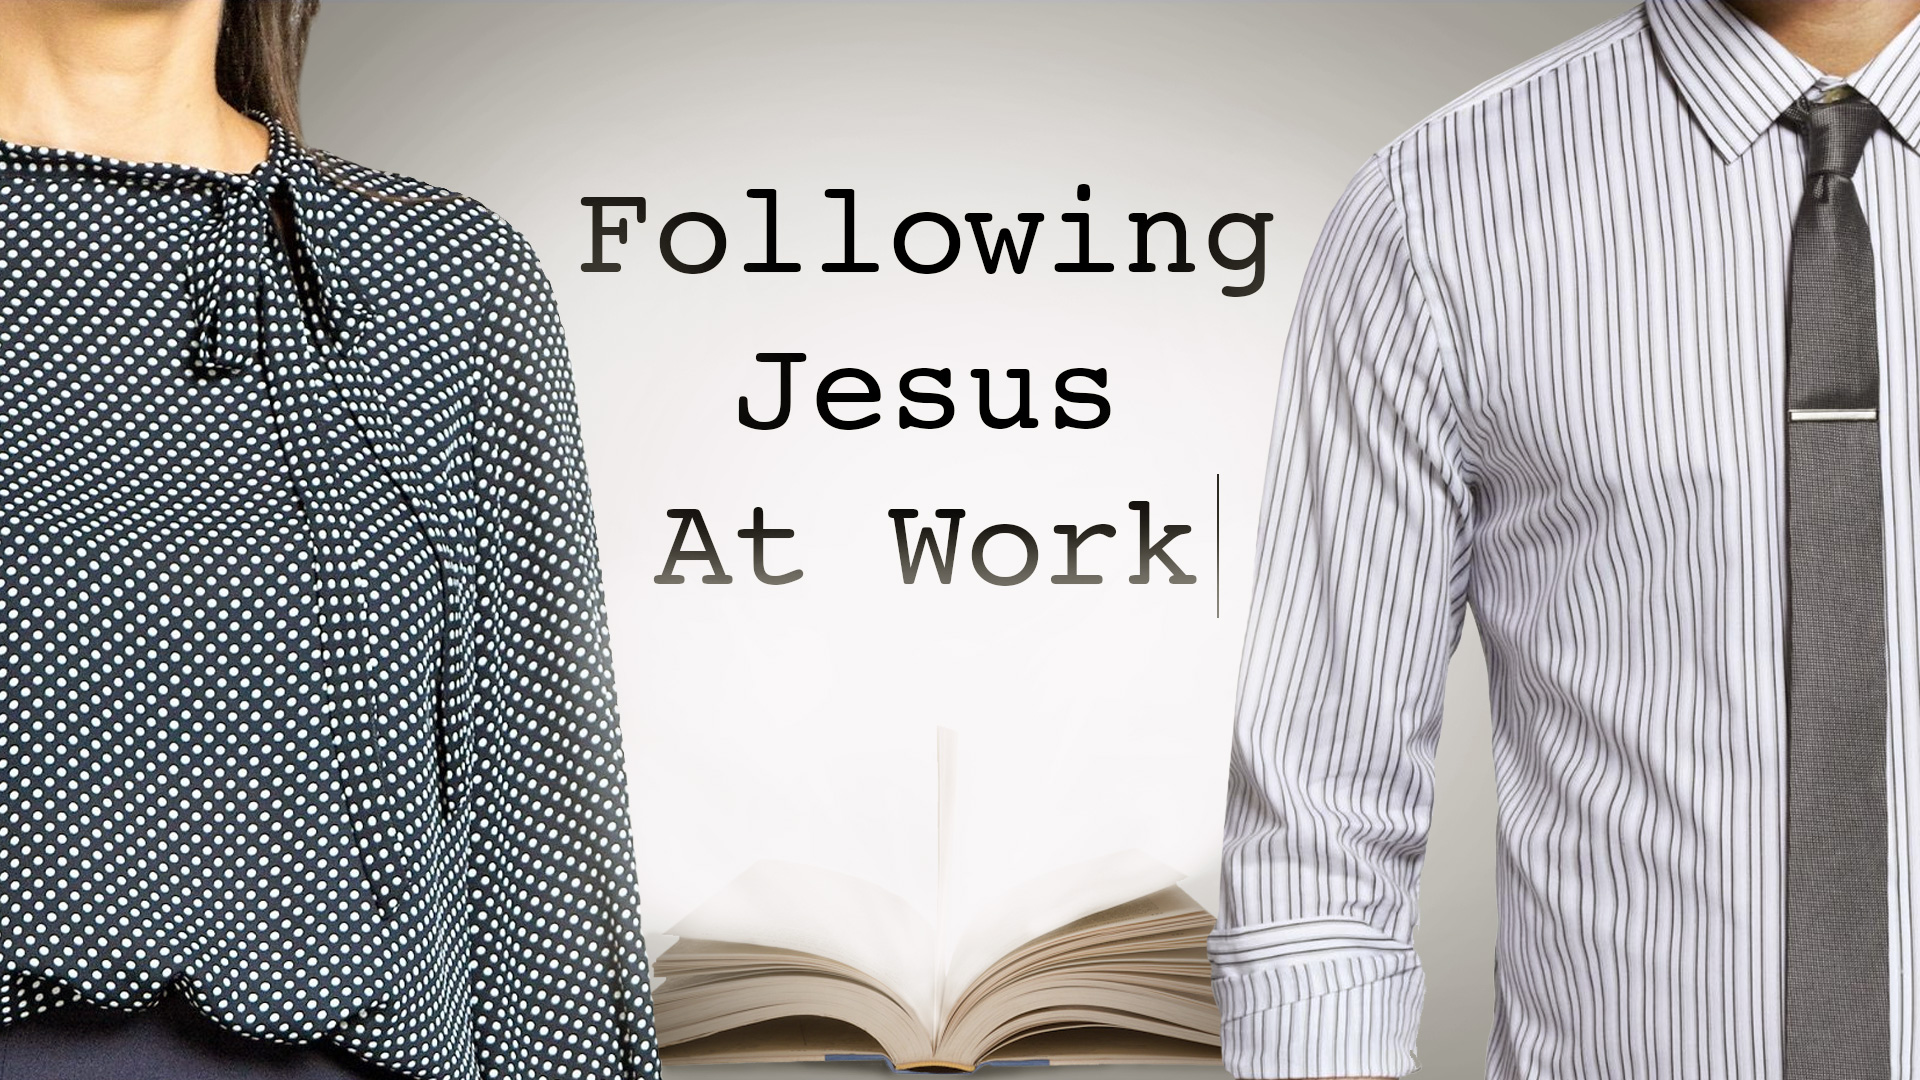 Following Jesus At Work (without being a weirdo)